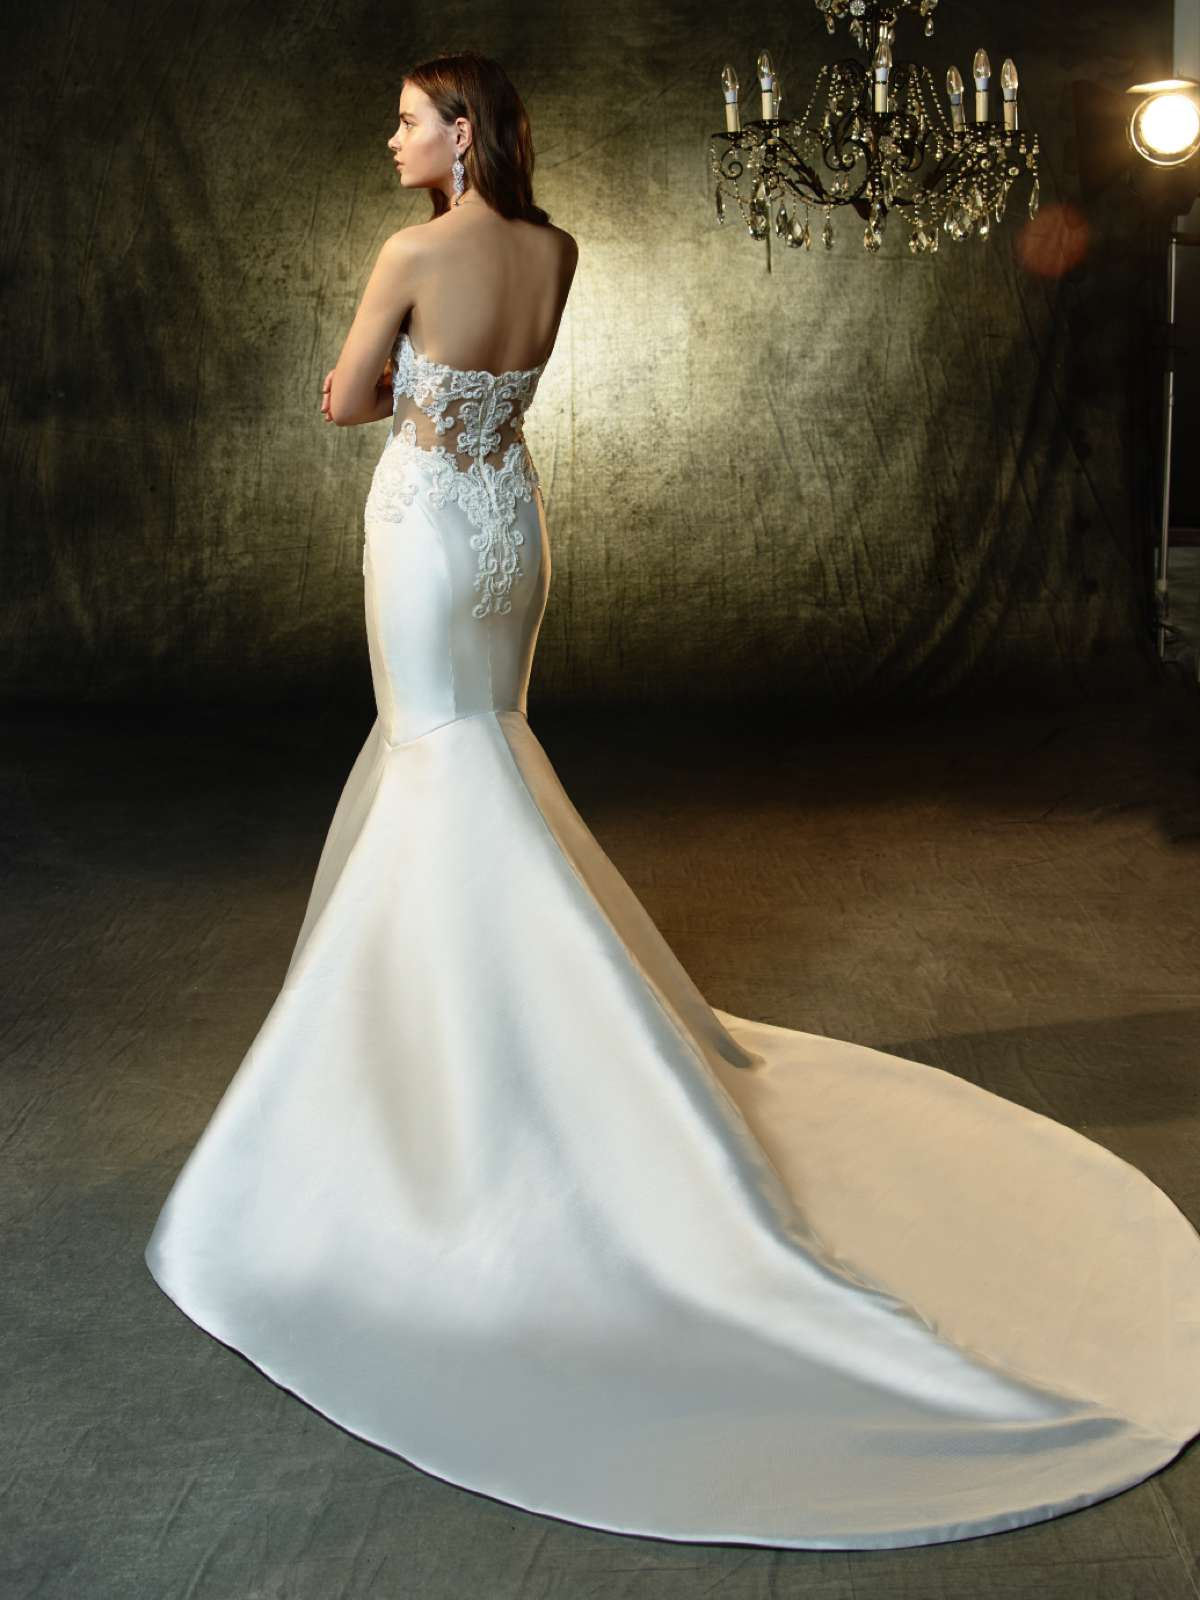 2855fac8a6 Laken by Blue by Enzoani - Find Your Dream Dress